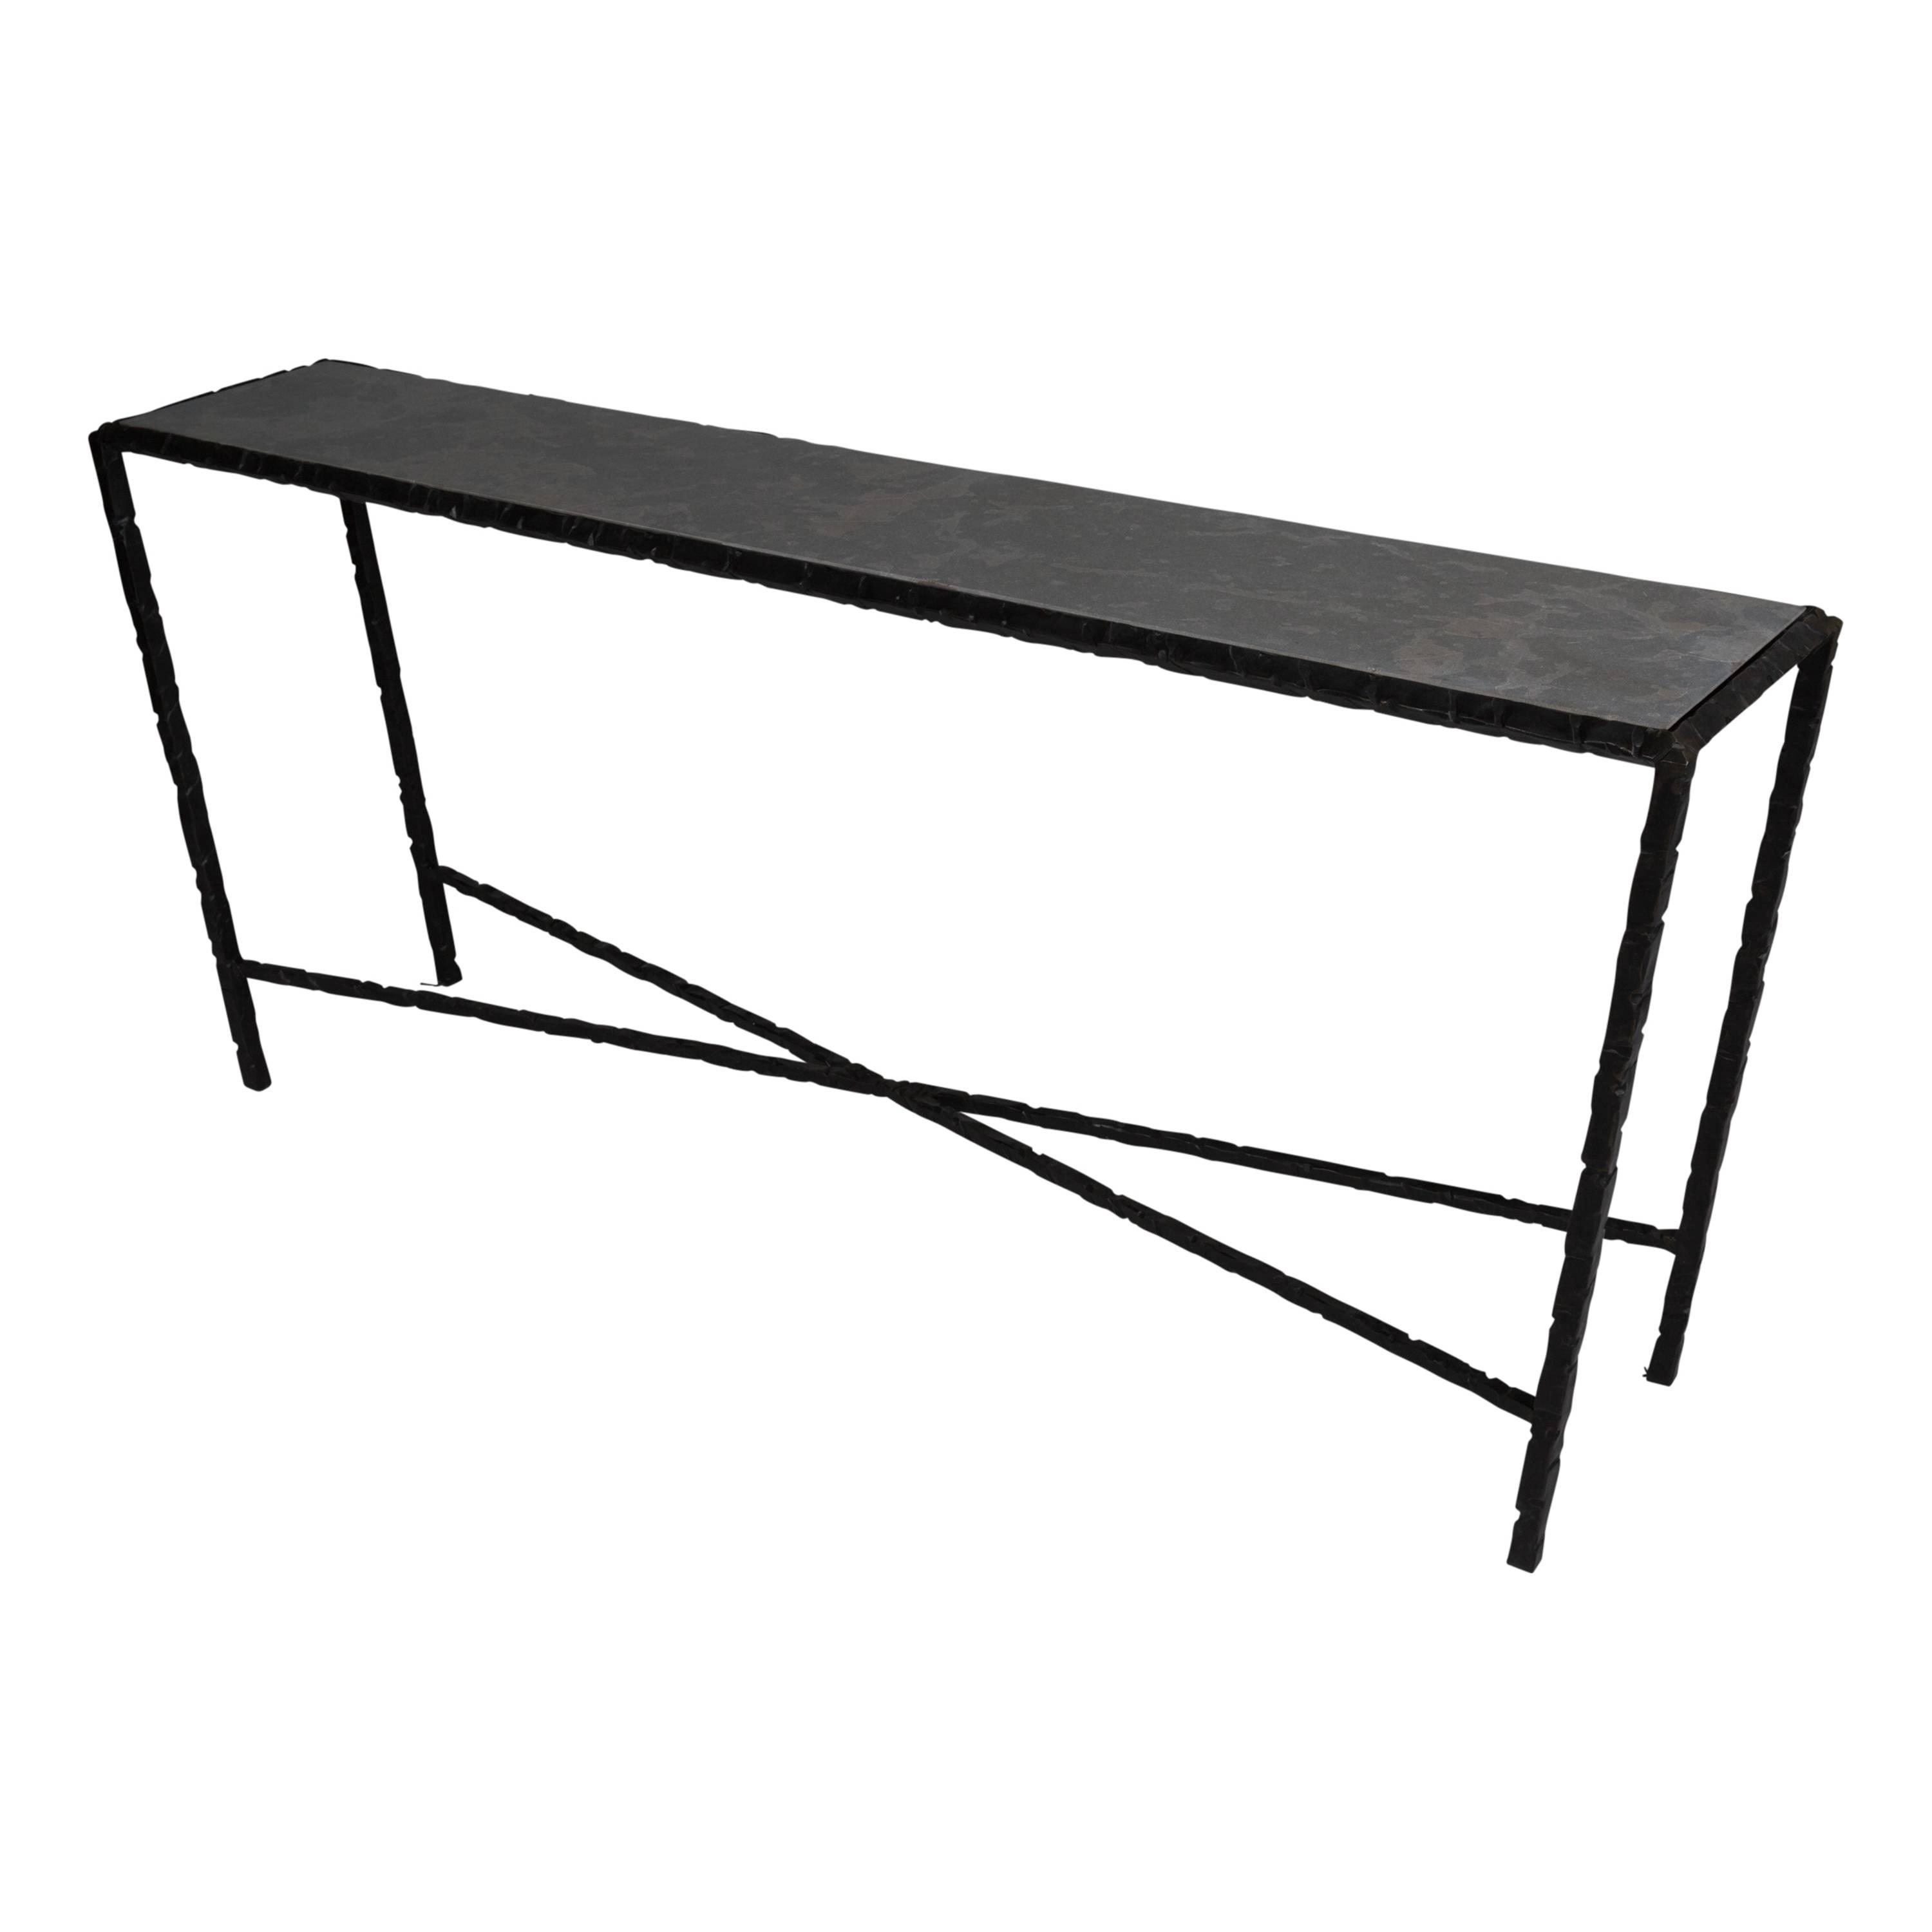 Hammered Steel Console Table, Bronze Patina For Sale At 1stdibs Throughout Mix Patina Metal Frame Console Tables (View 22 of 30)